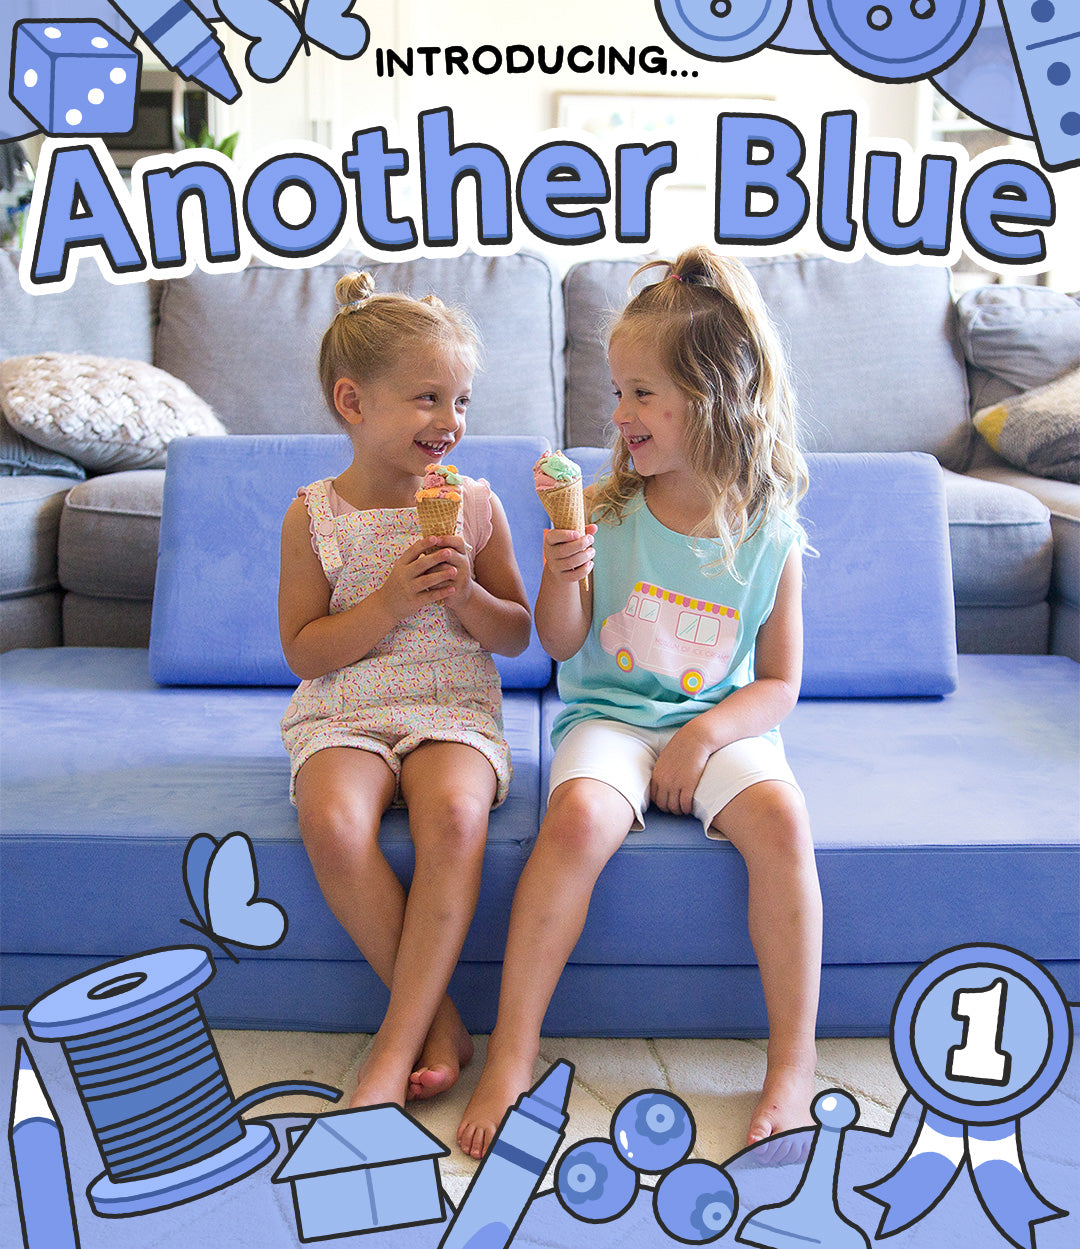 introducing another Nugget blue! Two girls sitting on a blue Nugget.